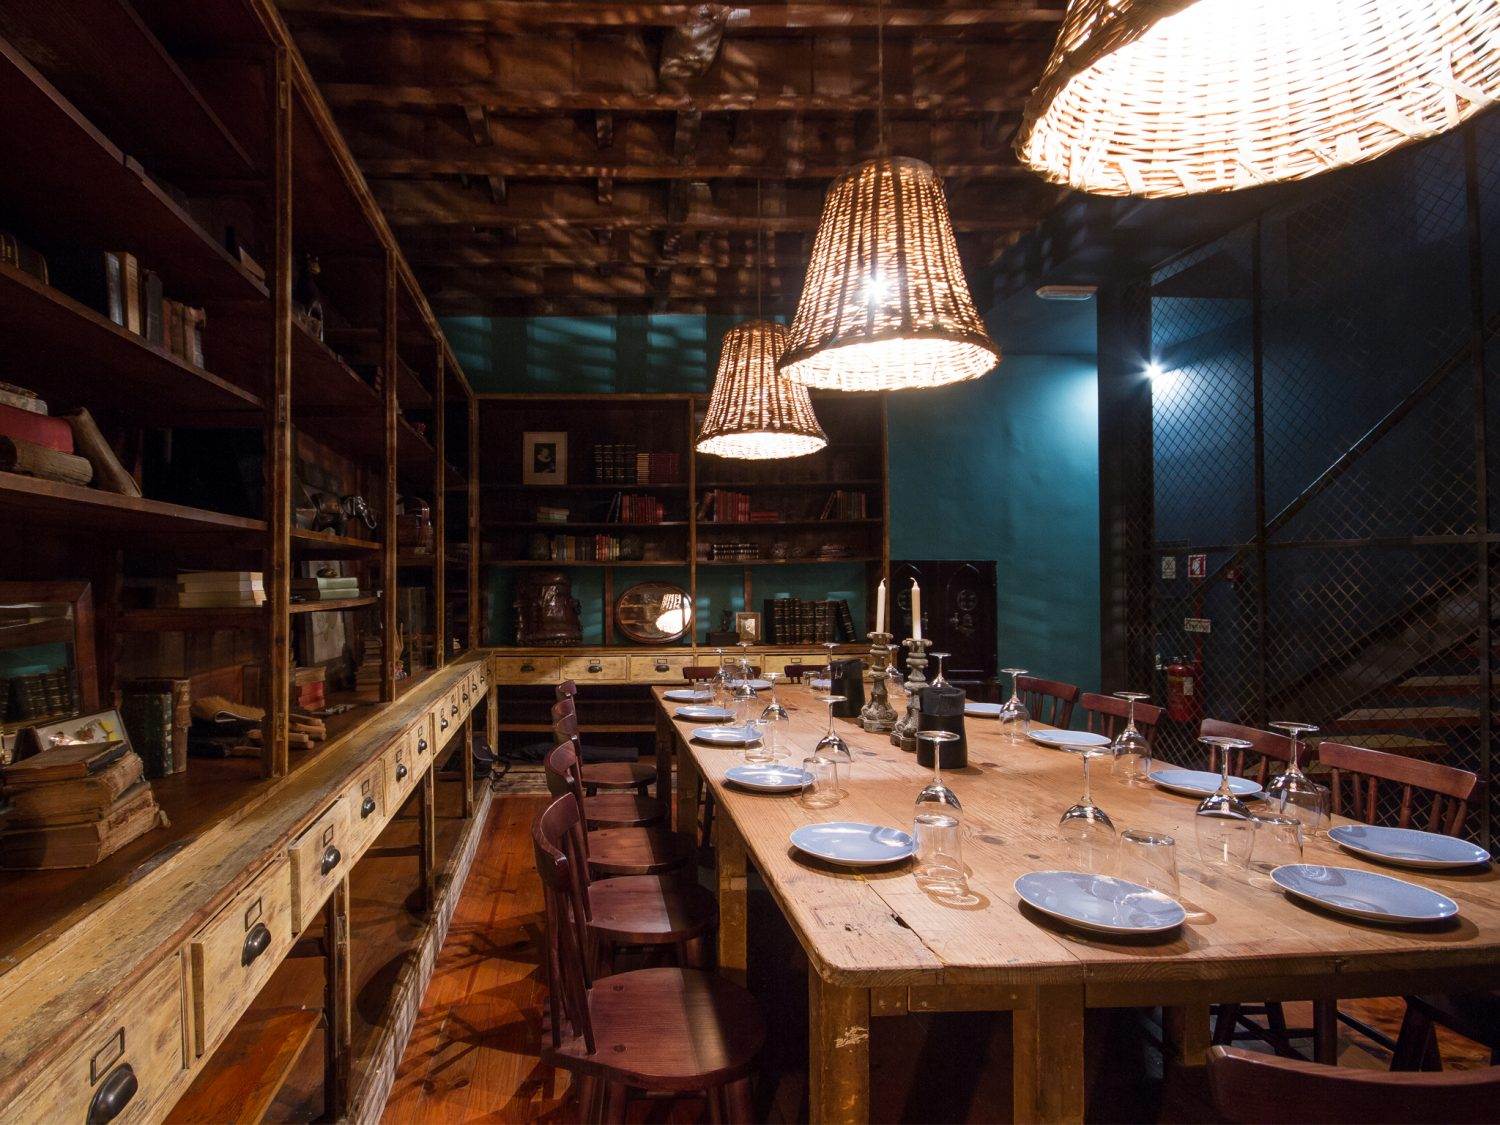 The Best Restaurants in Porto According to Carlos Ferreira